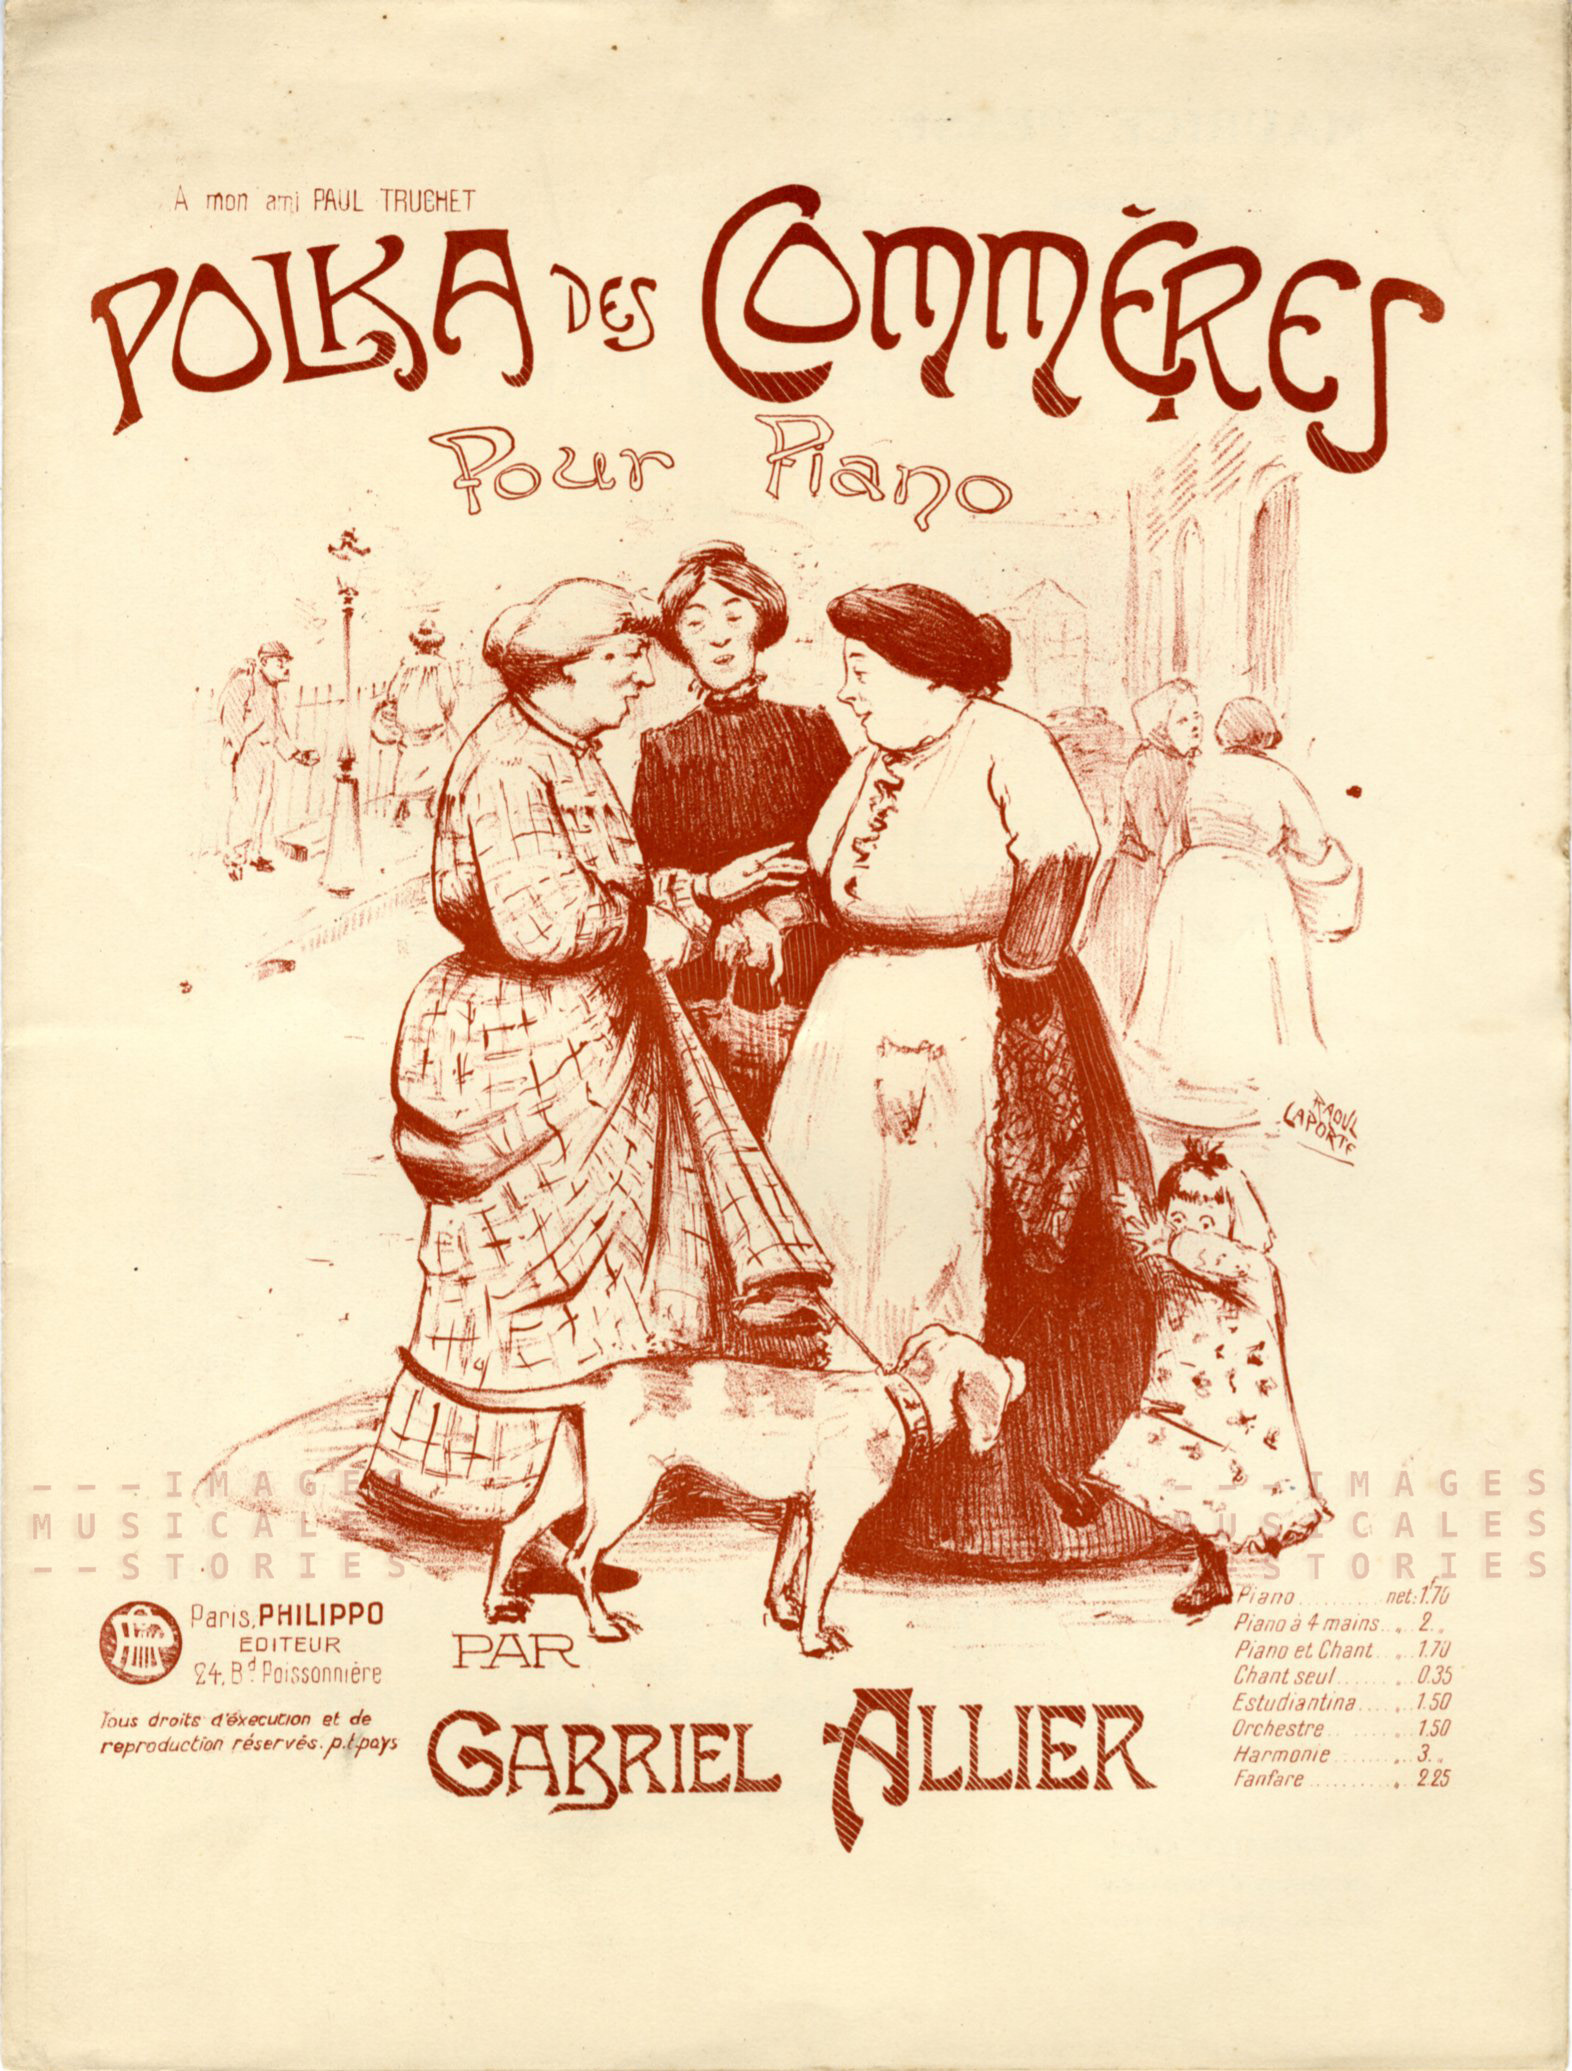 Polka des Commères, sheet music cover illustrated by Laporte